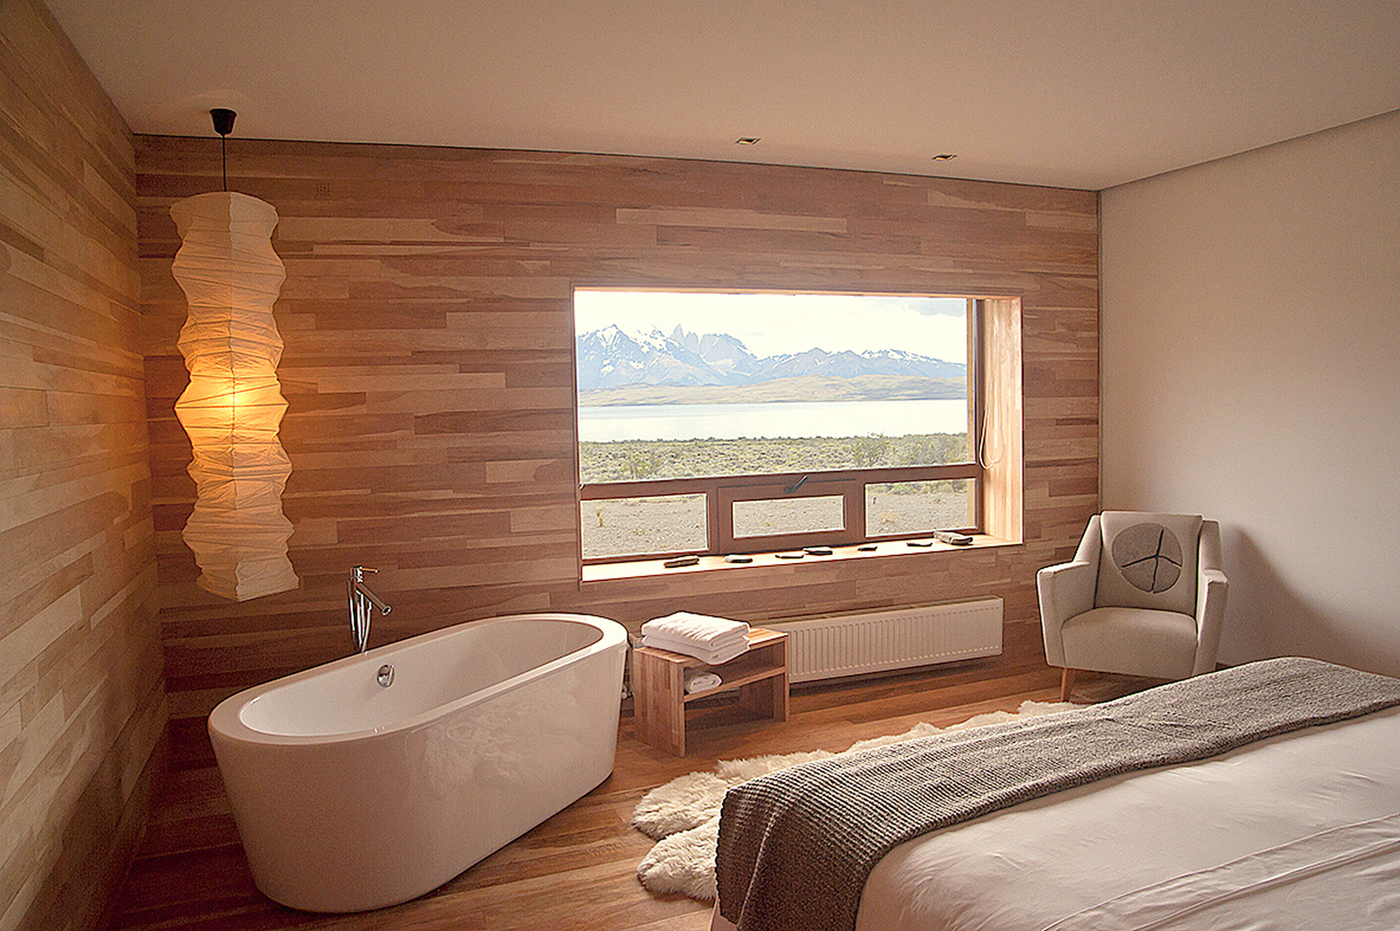 Wood wall and floor, sleeping room with bathtub